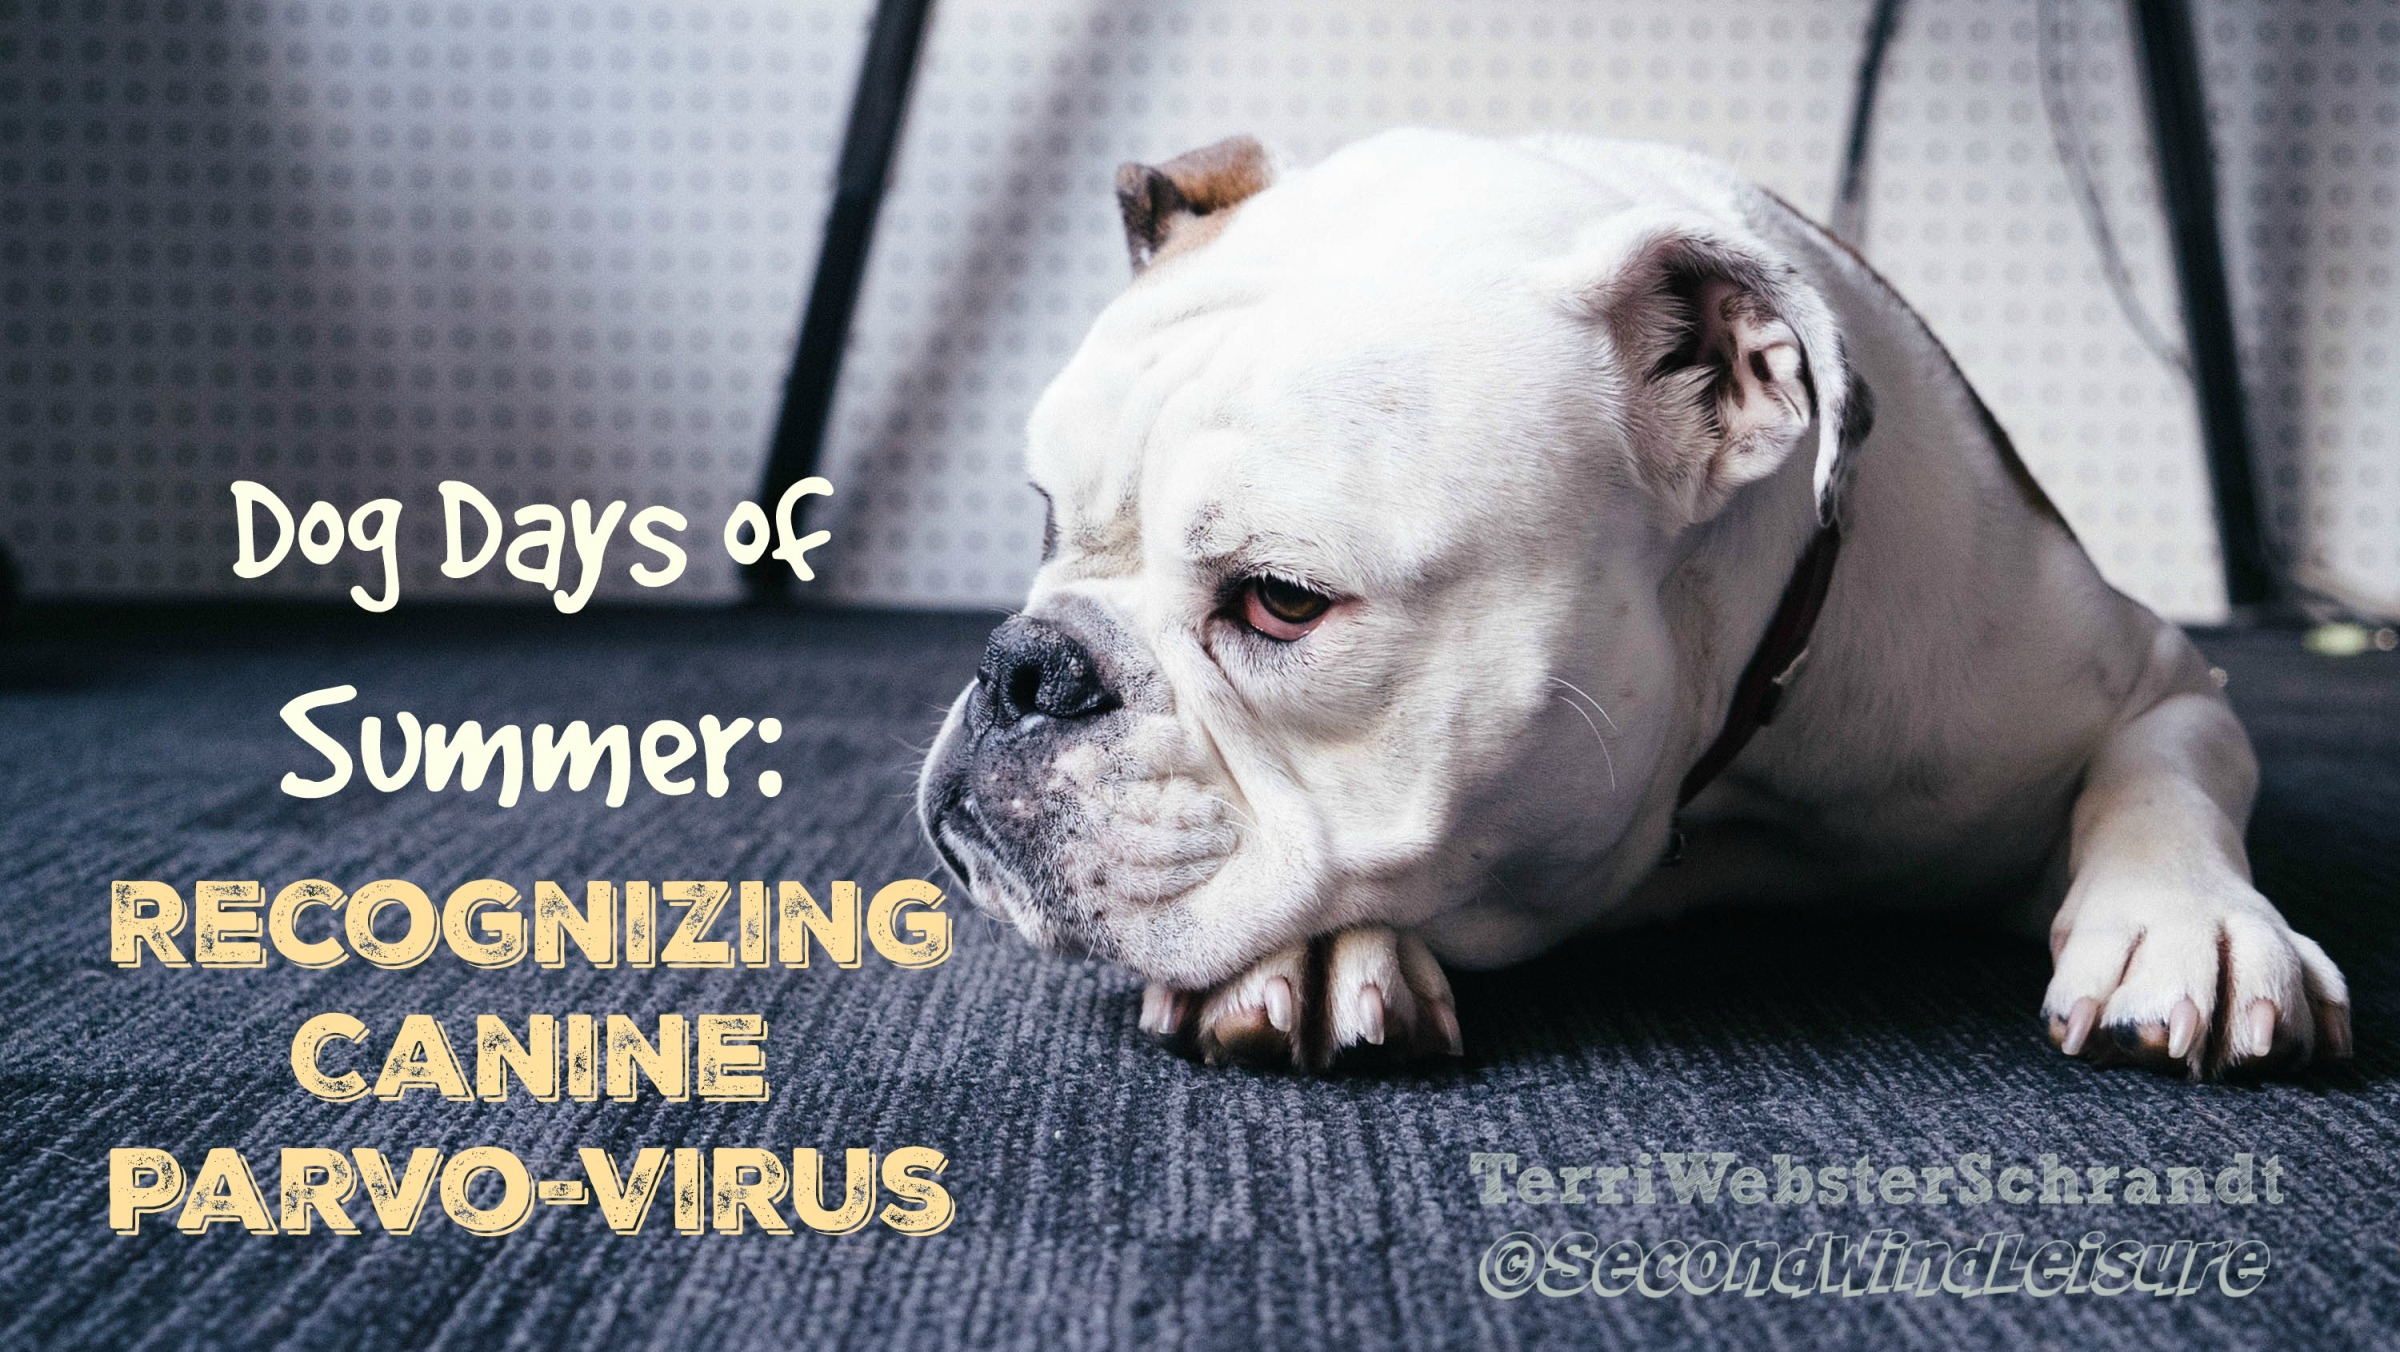 Recognizing canine parvo-virus in your dog